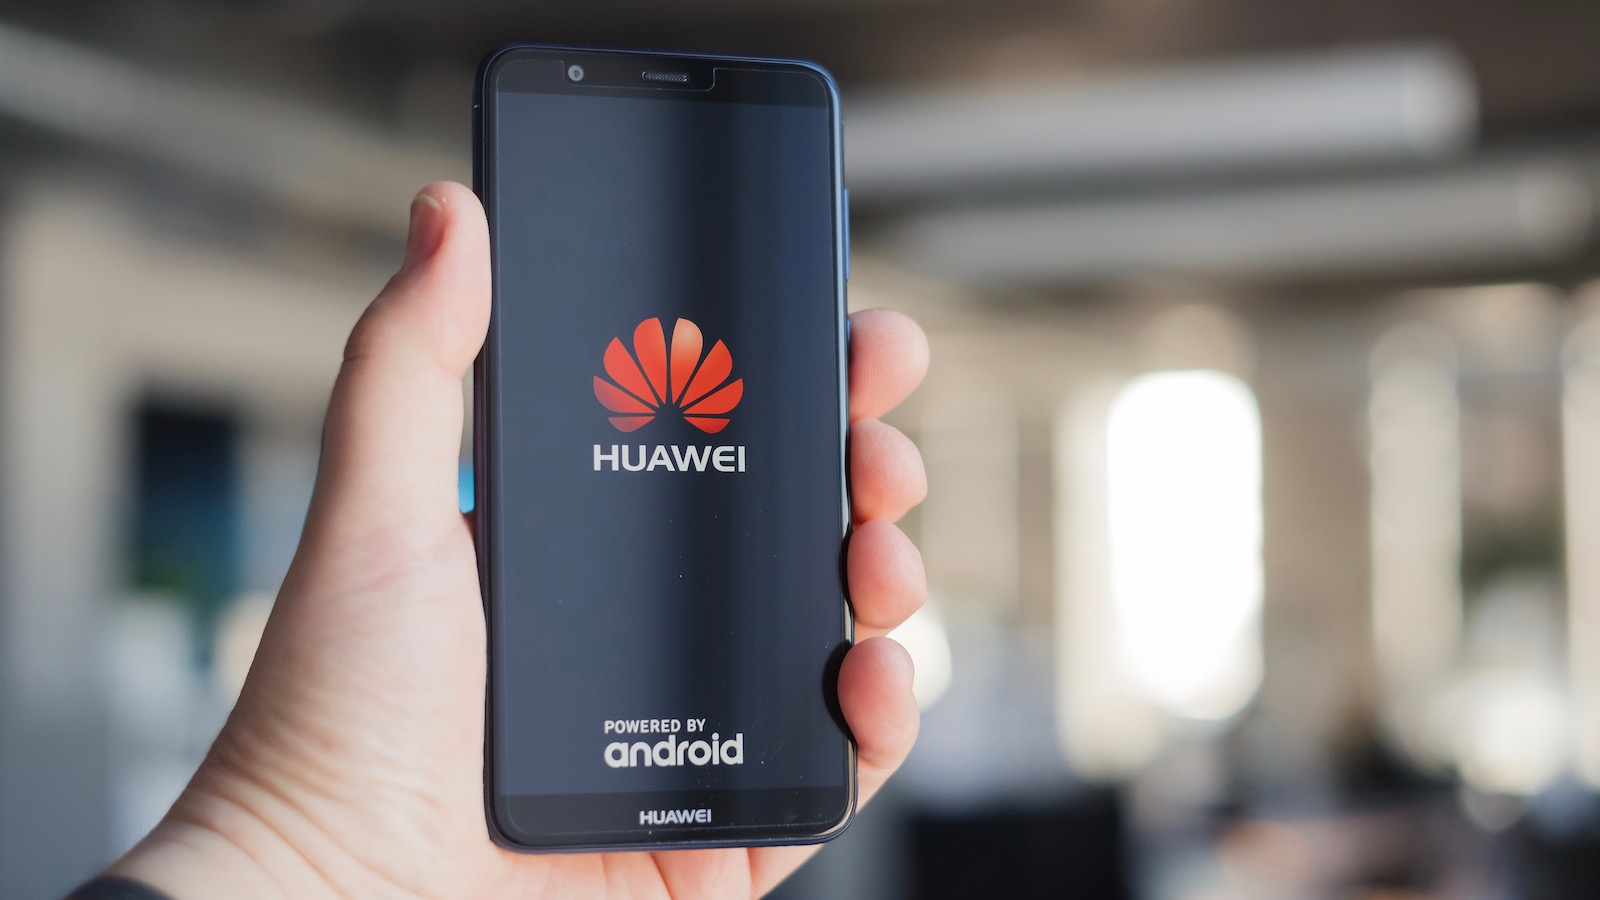 Huawei Global Contest for HMS App Innovation: Opportunity for Developers